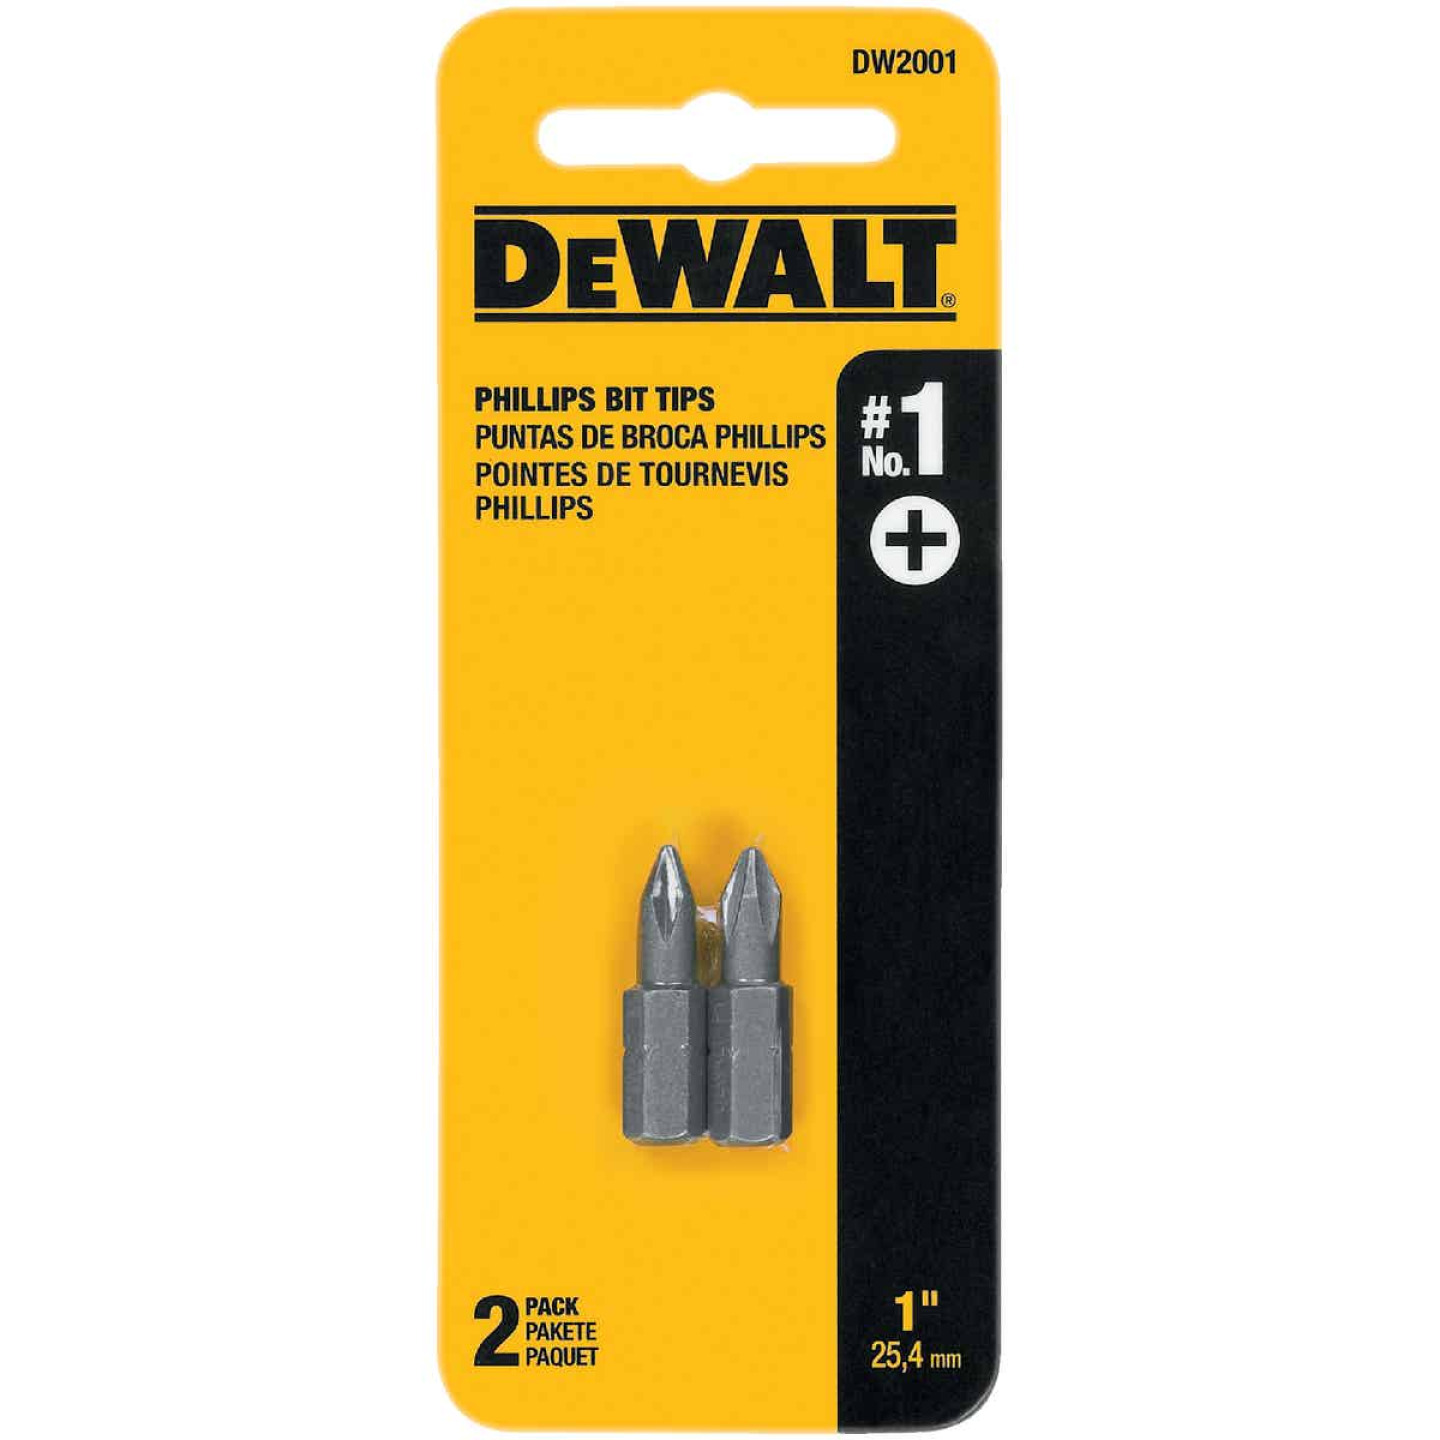 DeWalt Phillips #1 1 In. Insert Screwdriver Bit Image 1